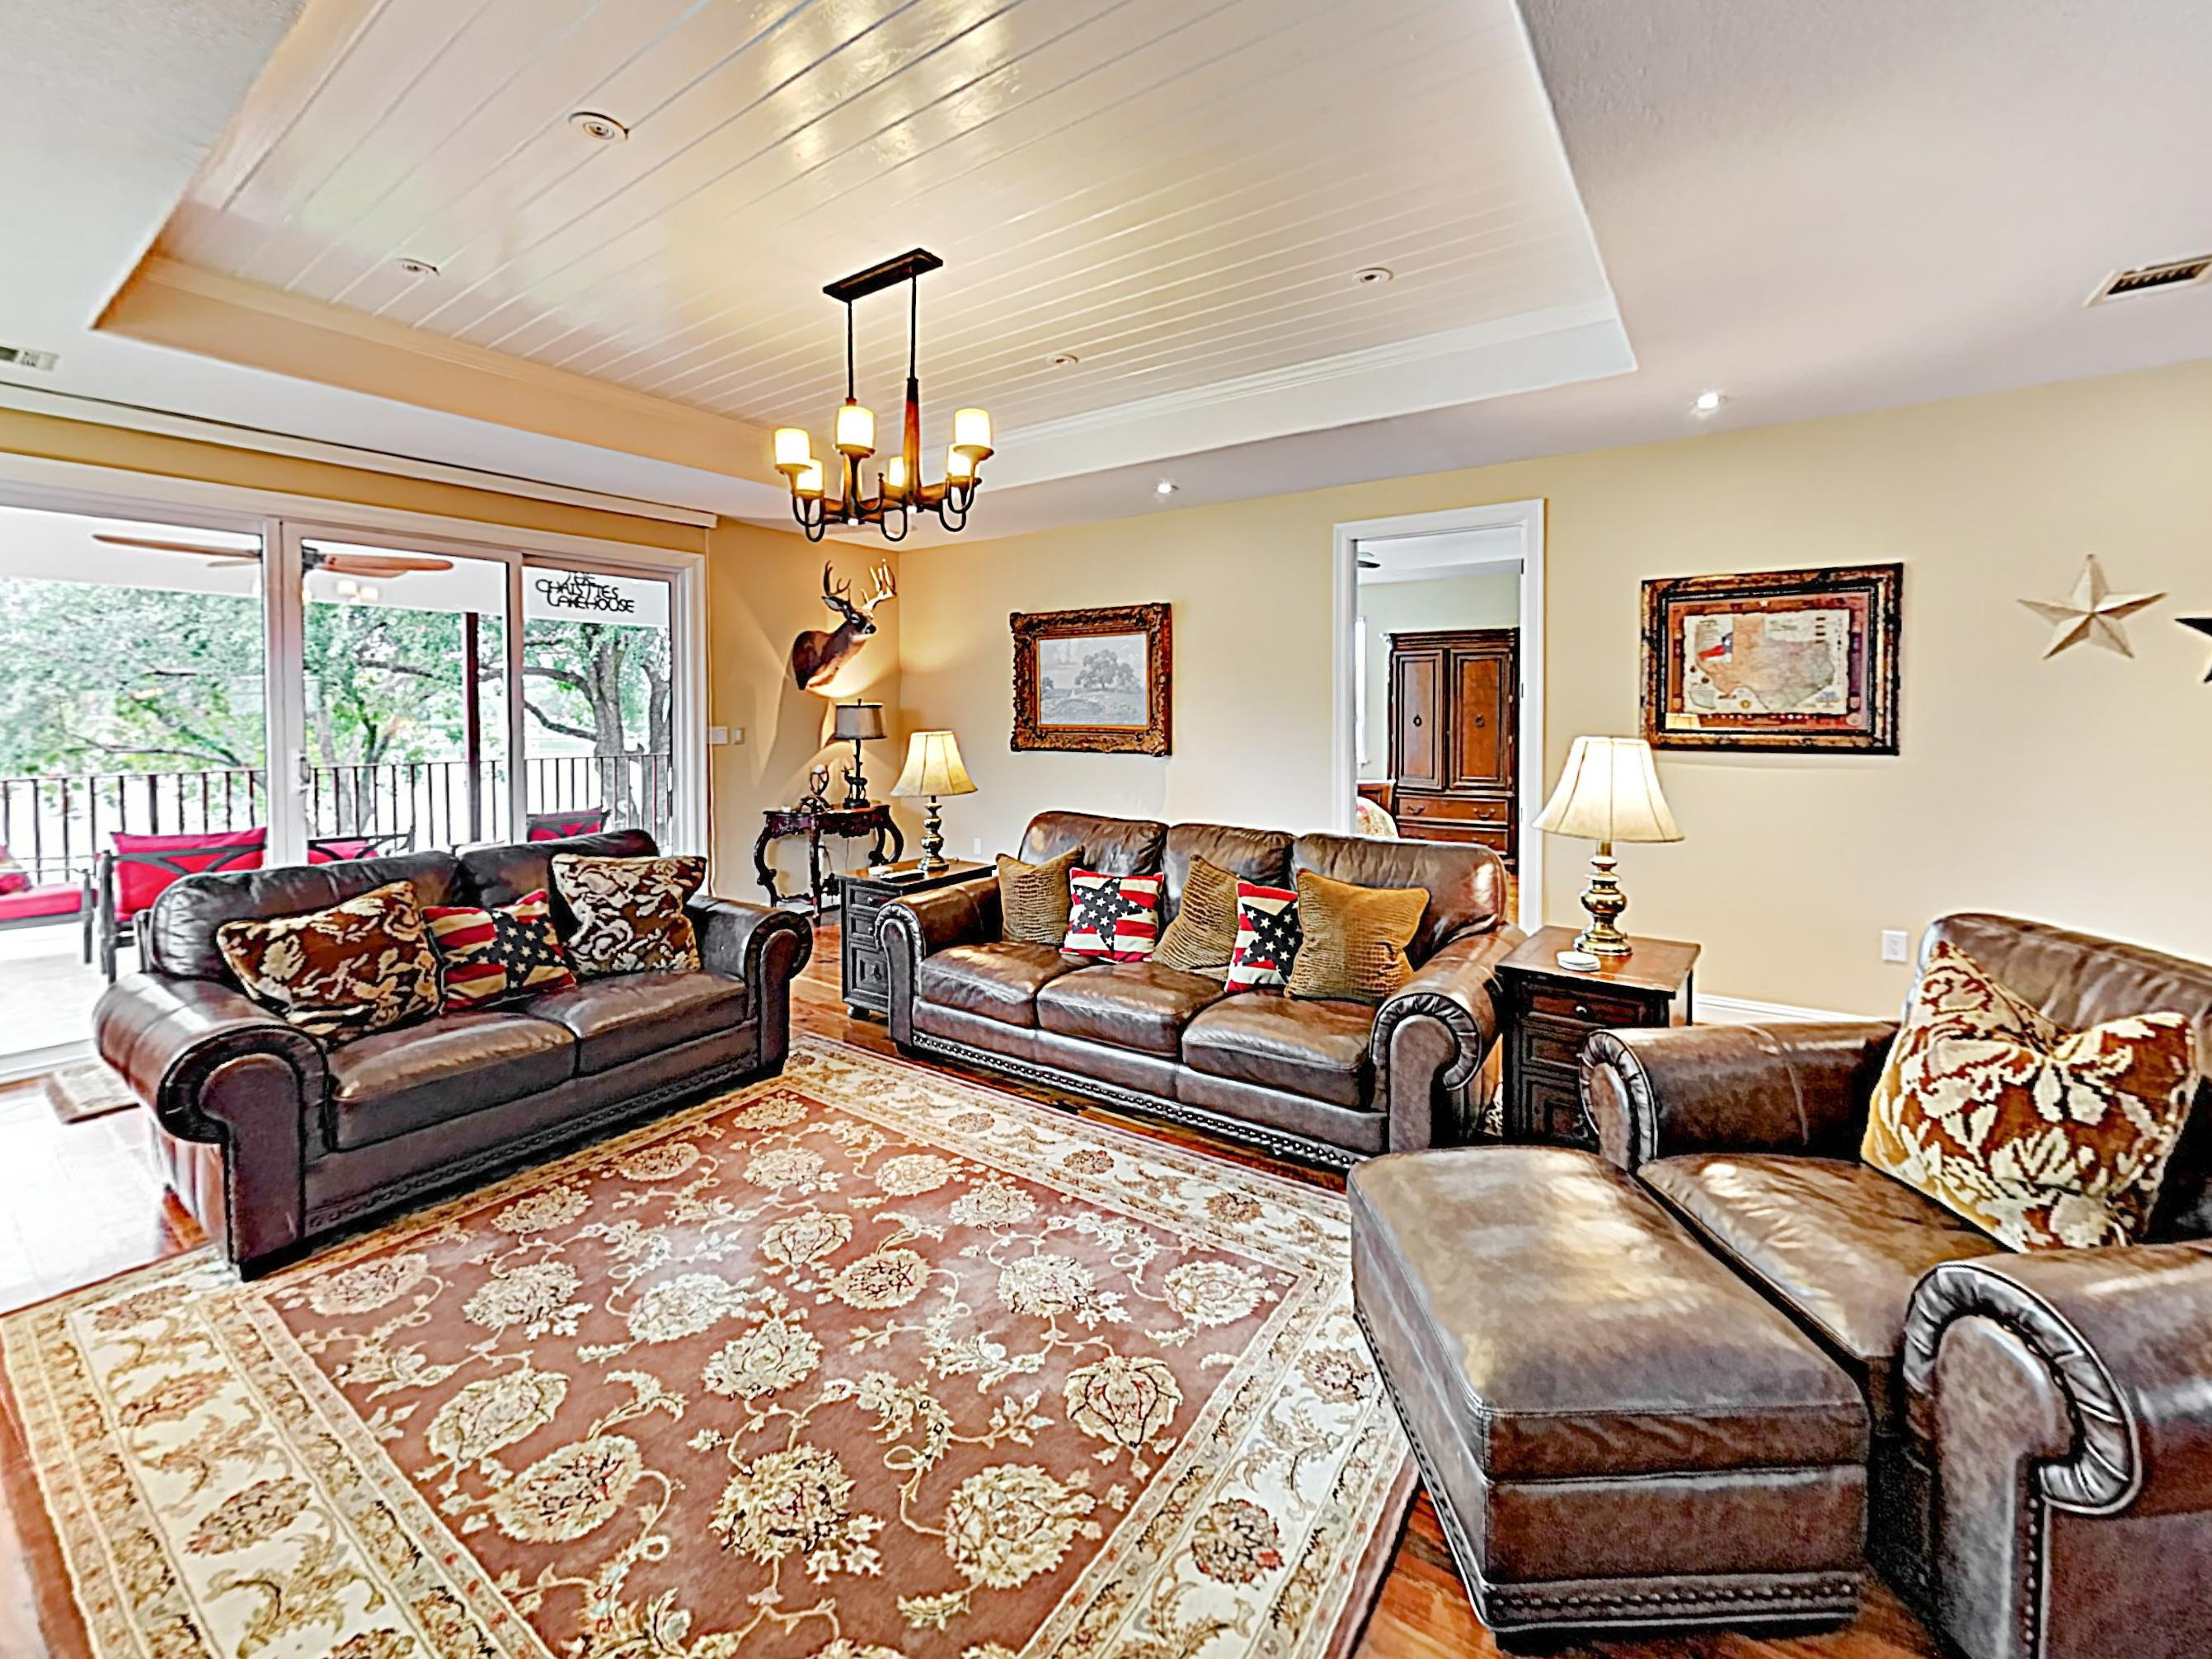 Make yourself at home in the lake house living room, equipped with plenty of plush seating and an electric fireplace.